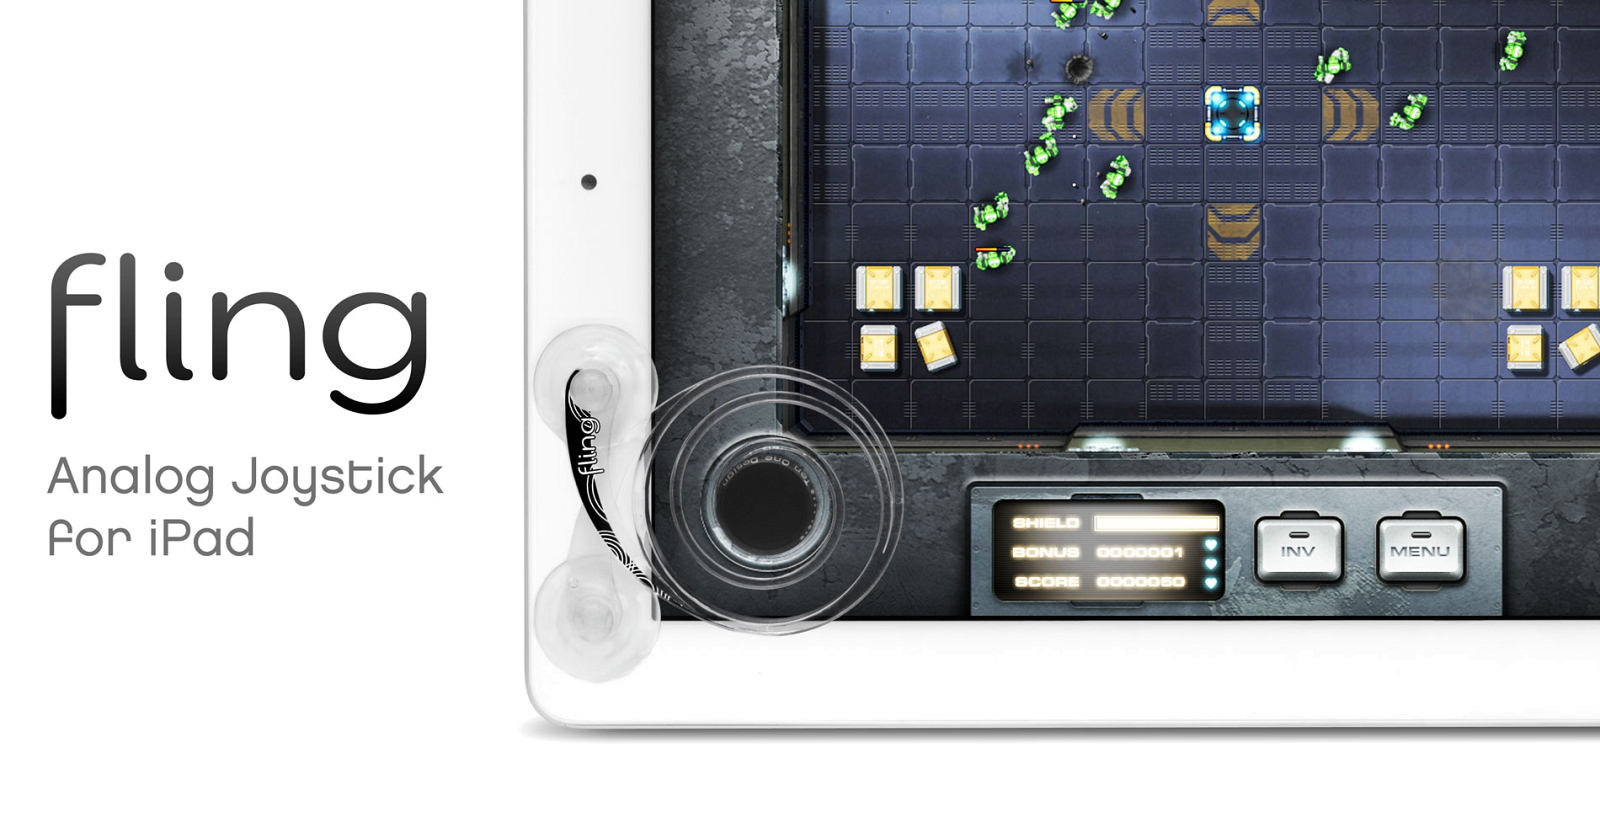 Which games work with Fling?